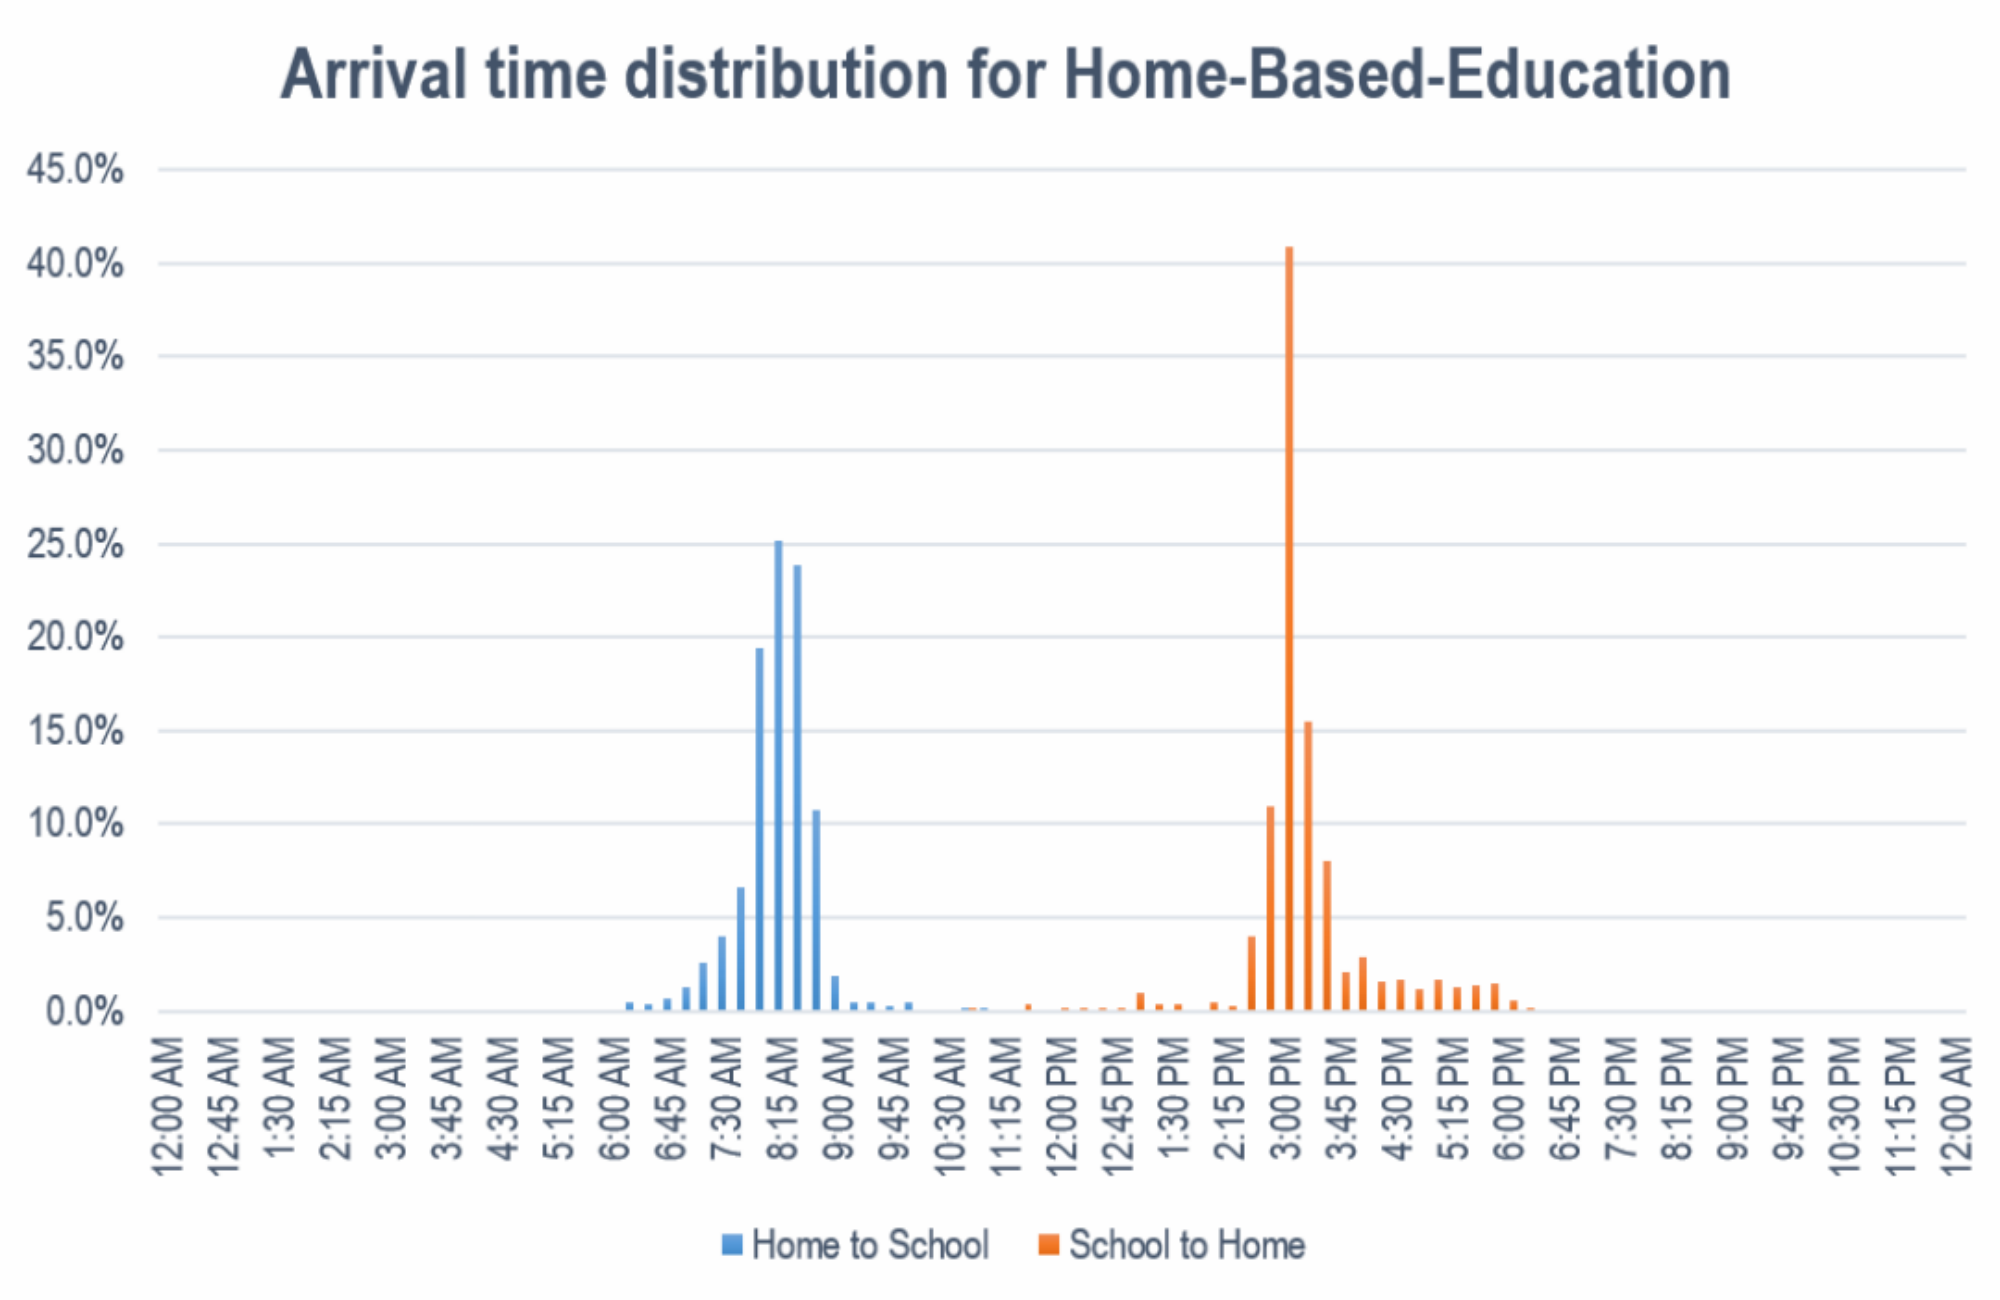 Figure: Arrival time distribution for Home-Based-Education